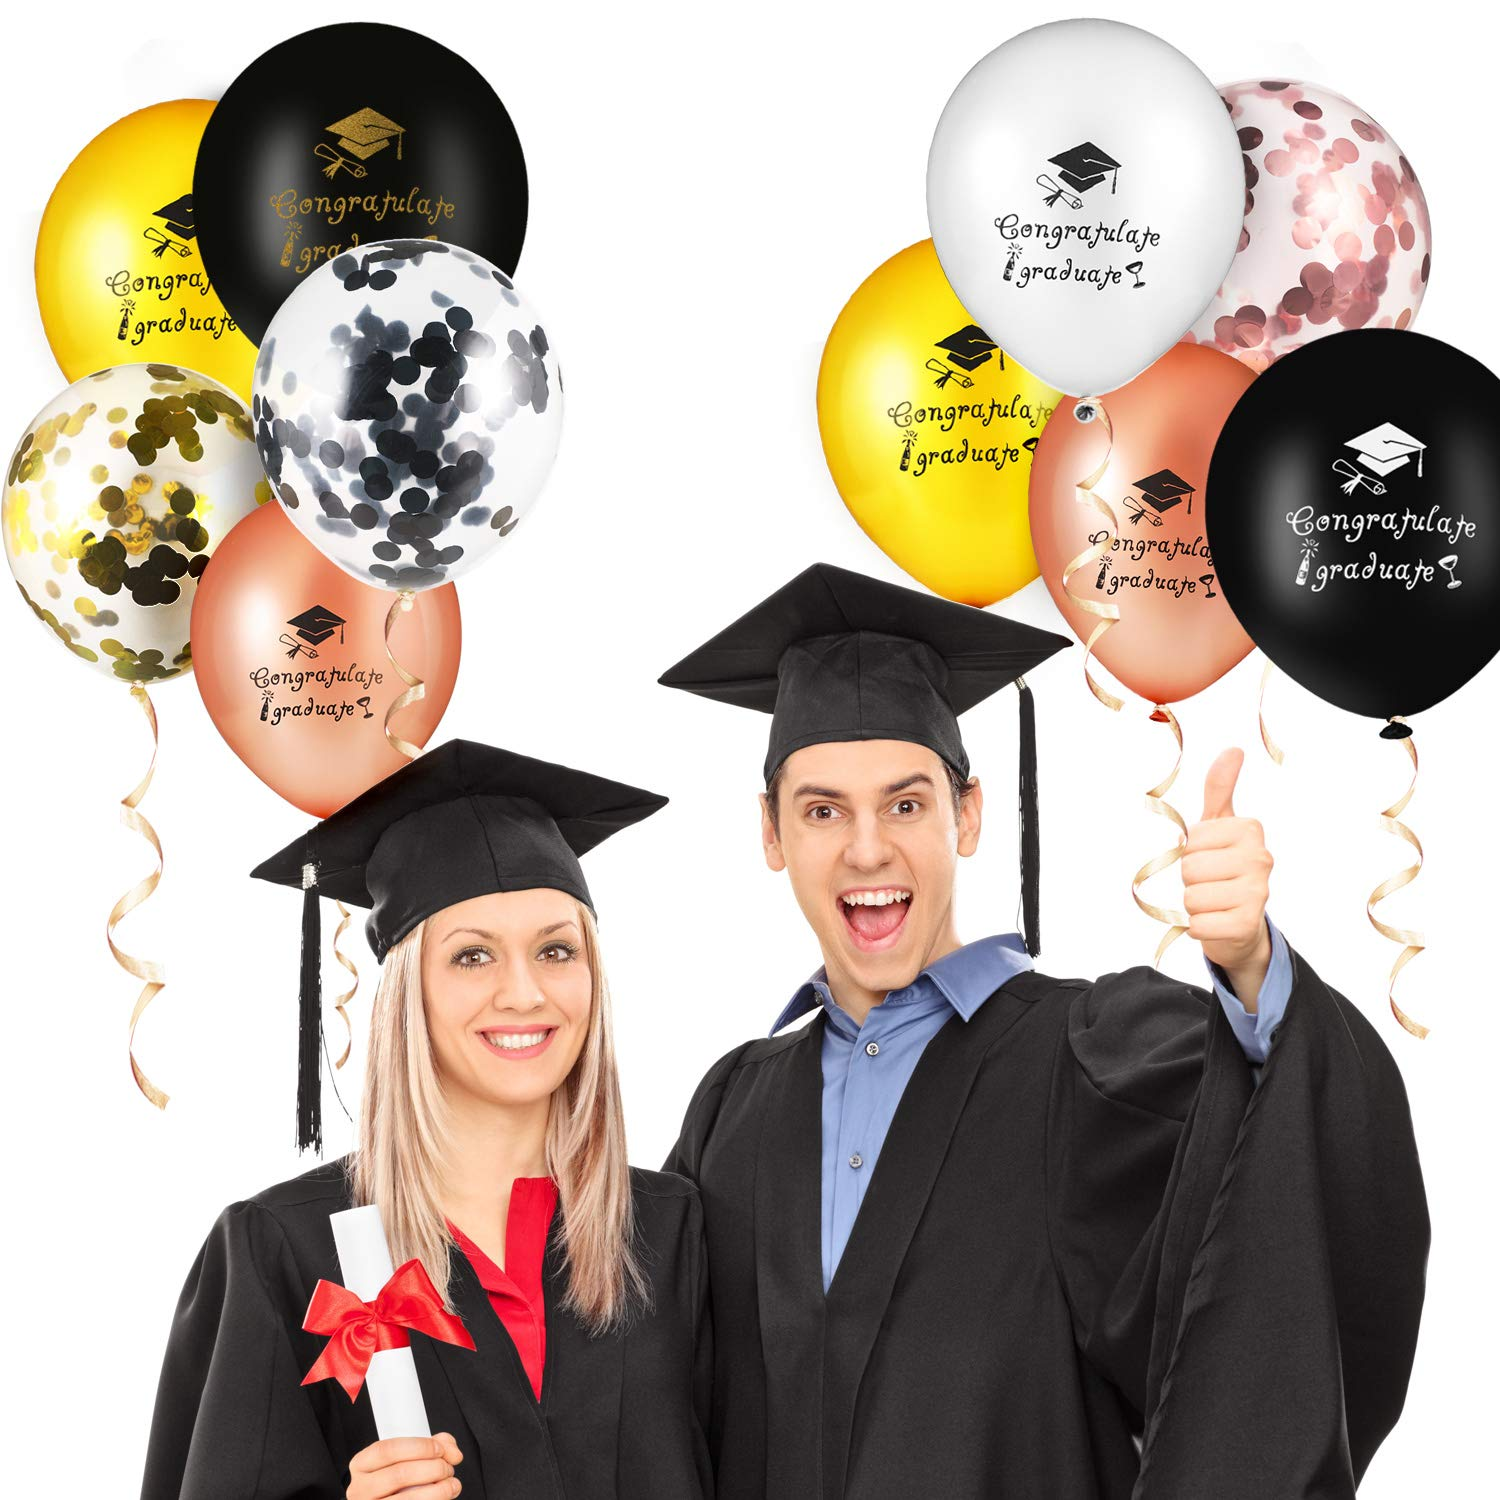 Yaomiao 45 Pieces Graduation Latex Balloons Confetti Balloons Gold Silver Black Rose Gold Graduate Balloon Decoration for Graduation Party